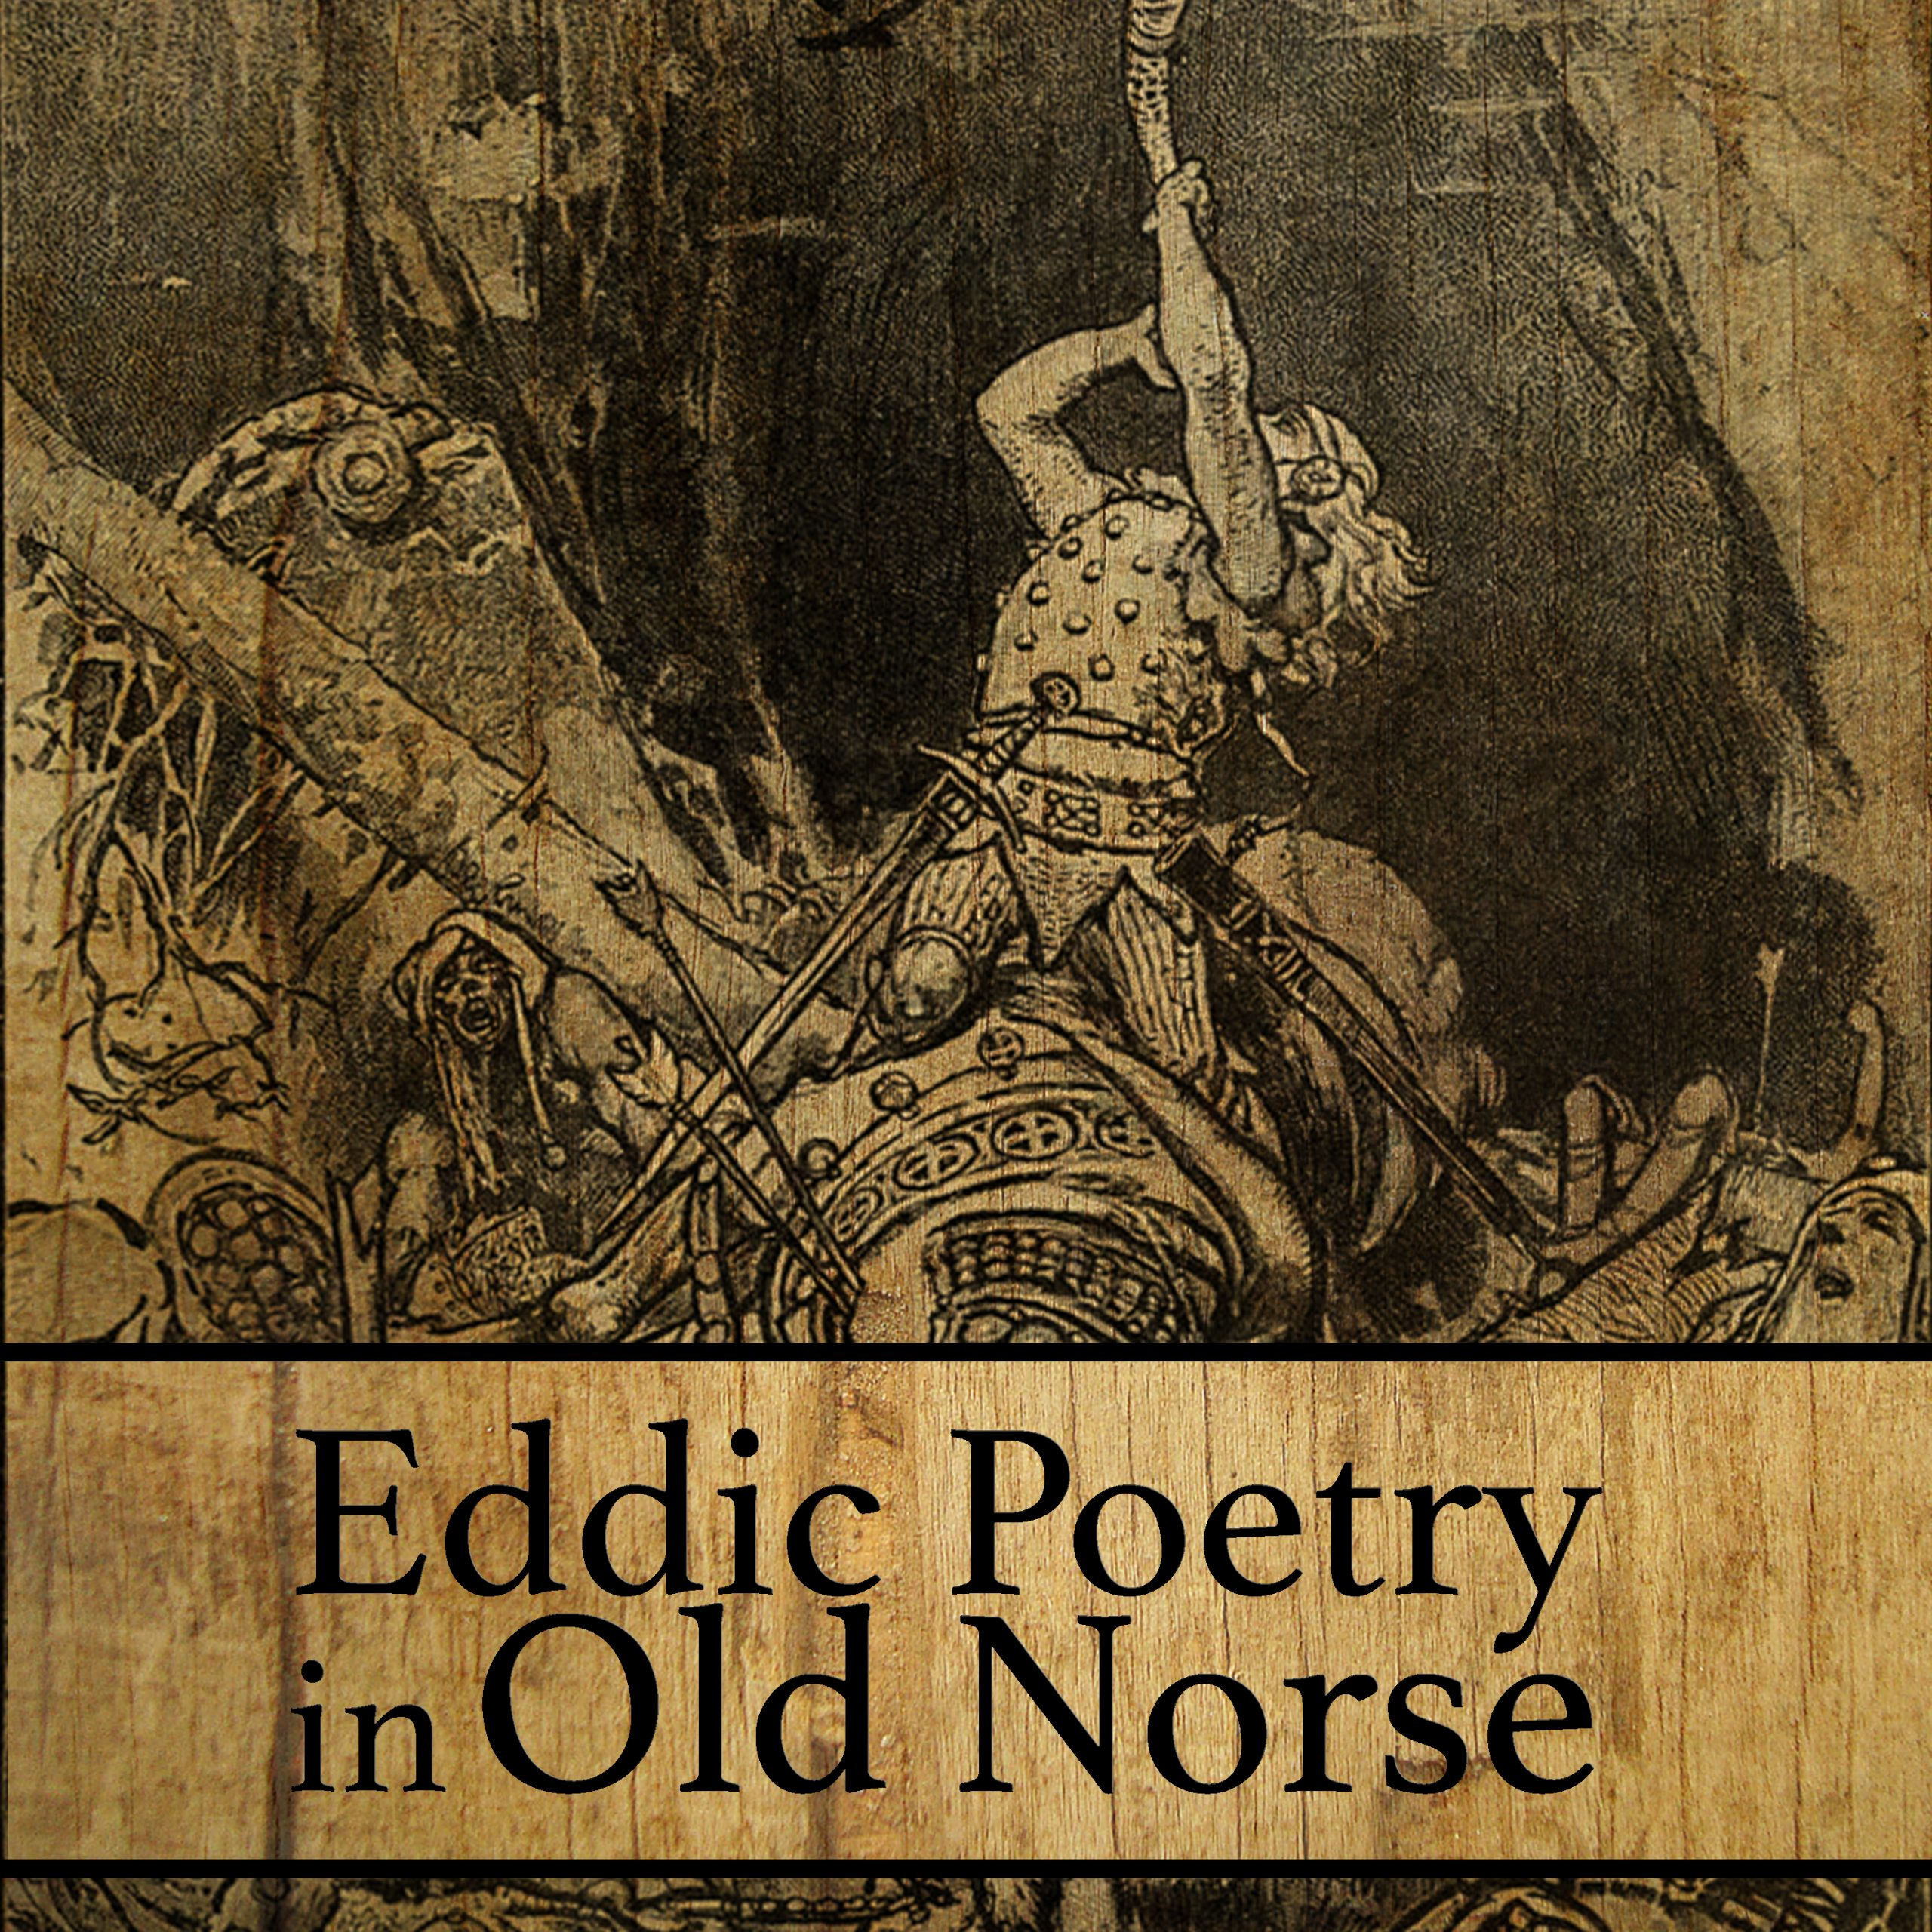 Eddic Poetry in Old Norse